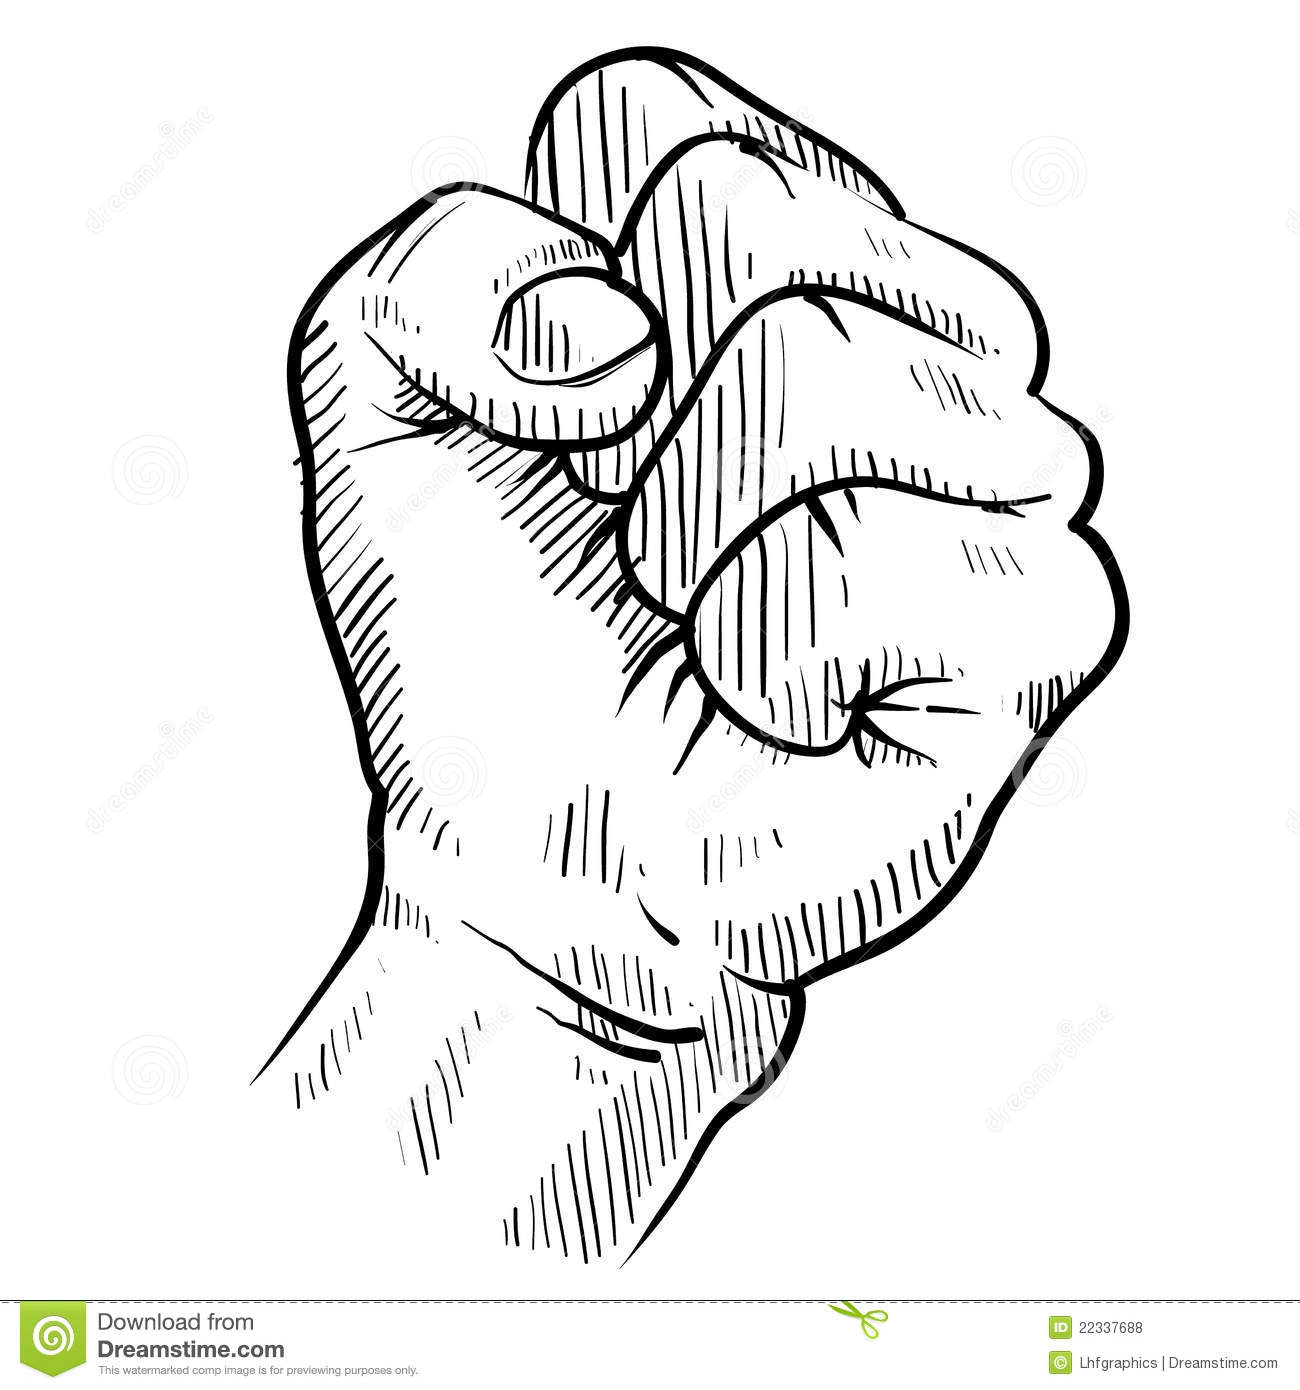 Protest Fist Sketch Royalty Free Stock Photos Image